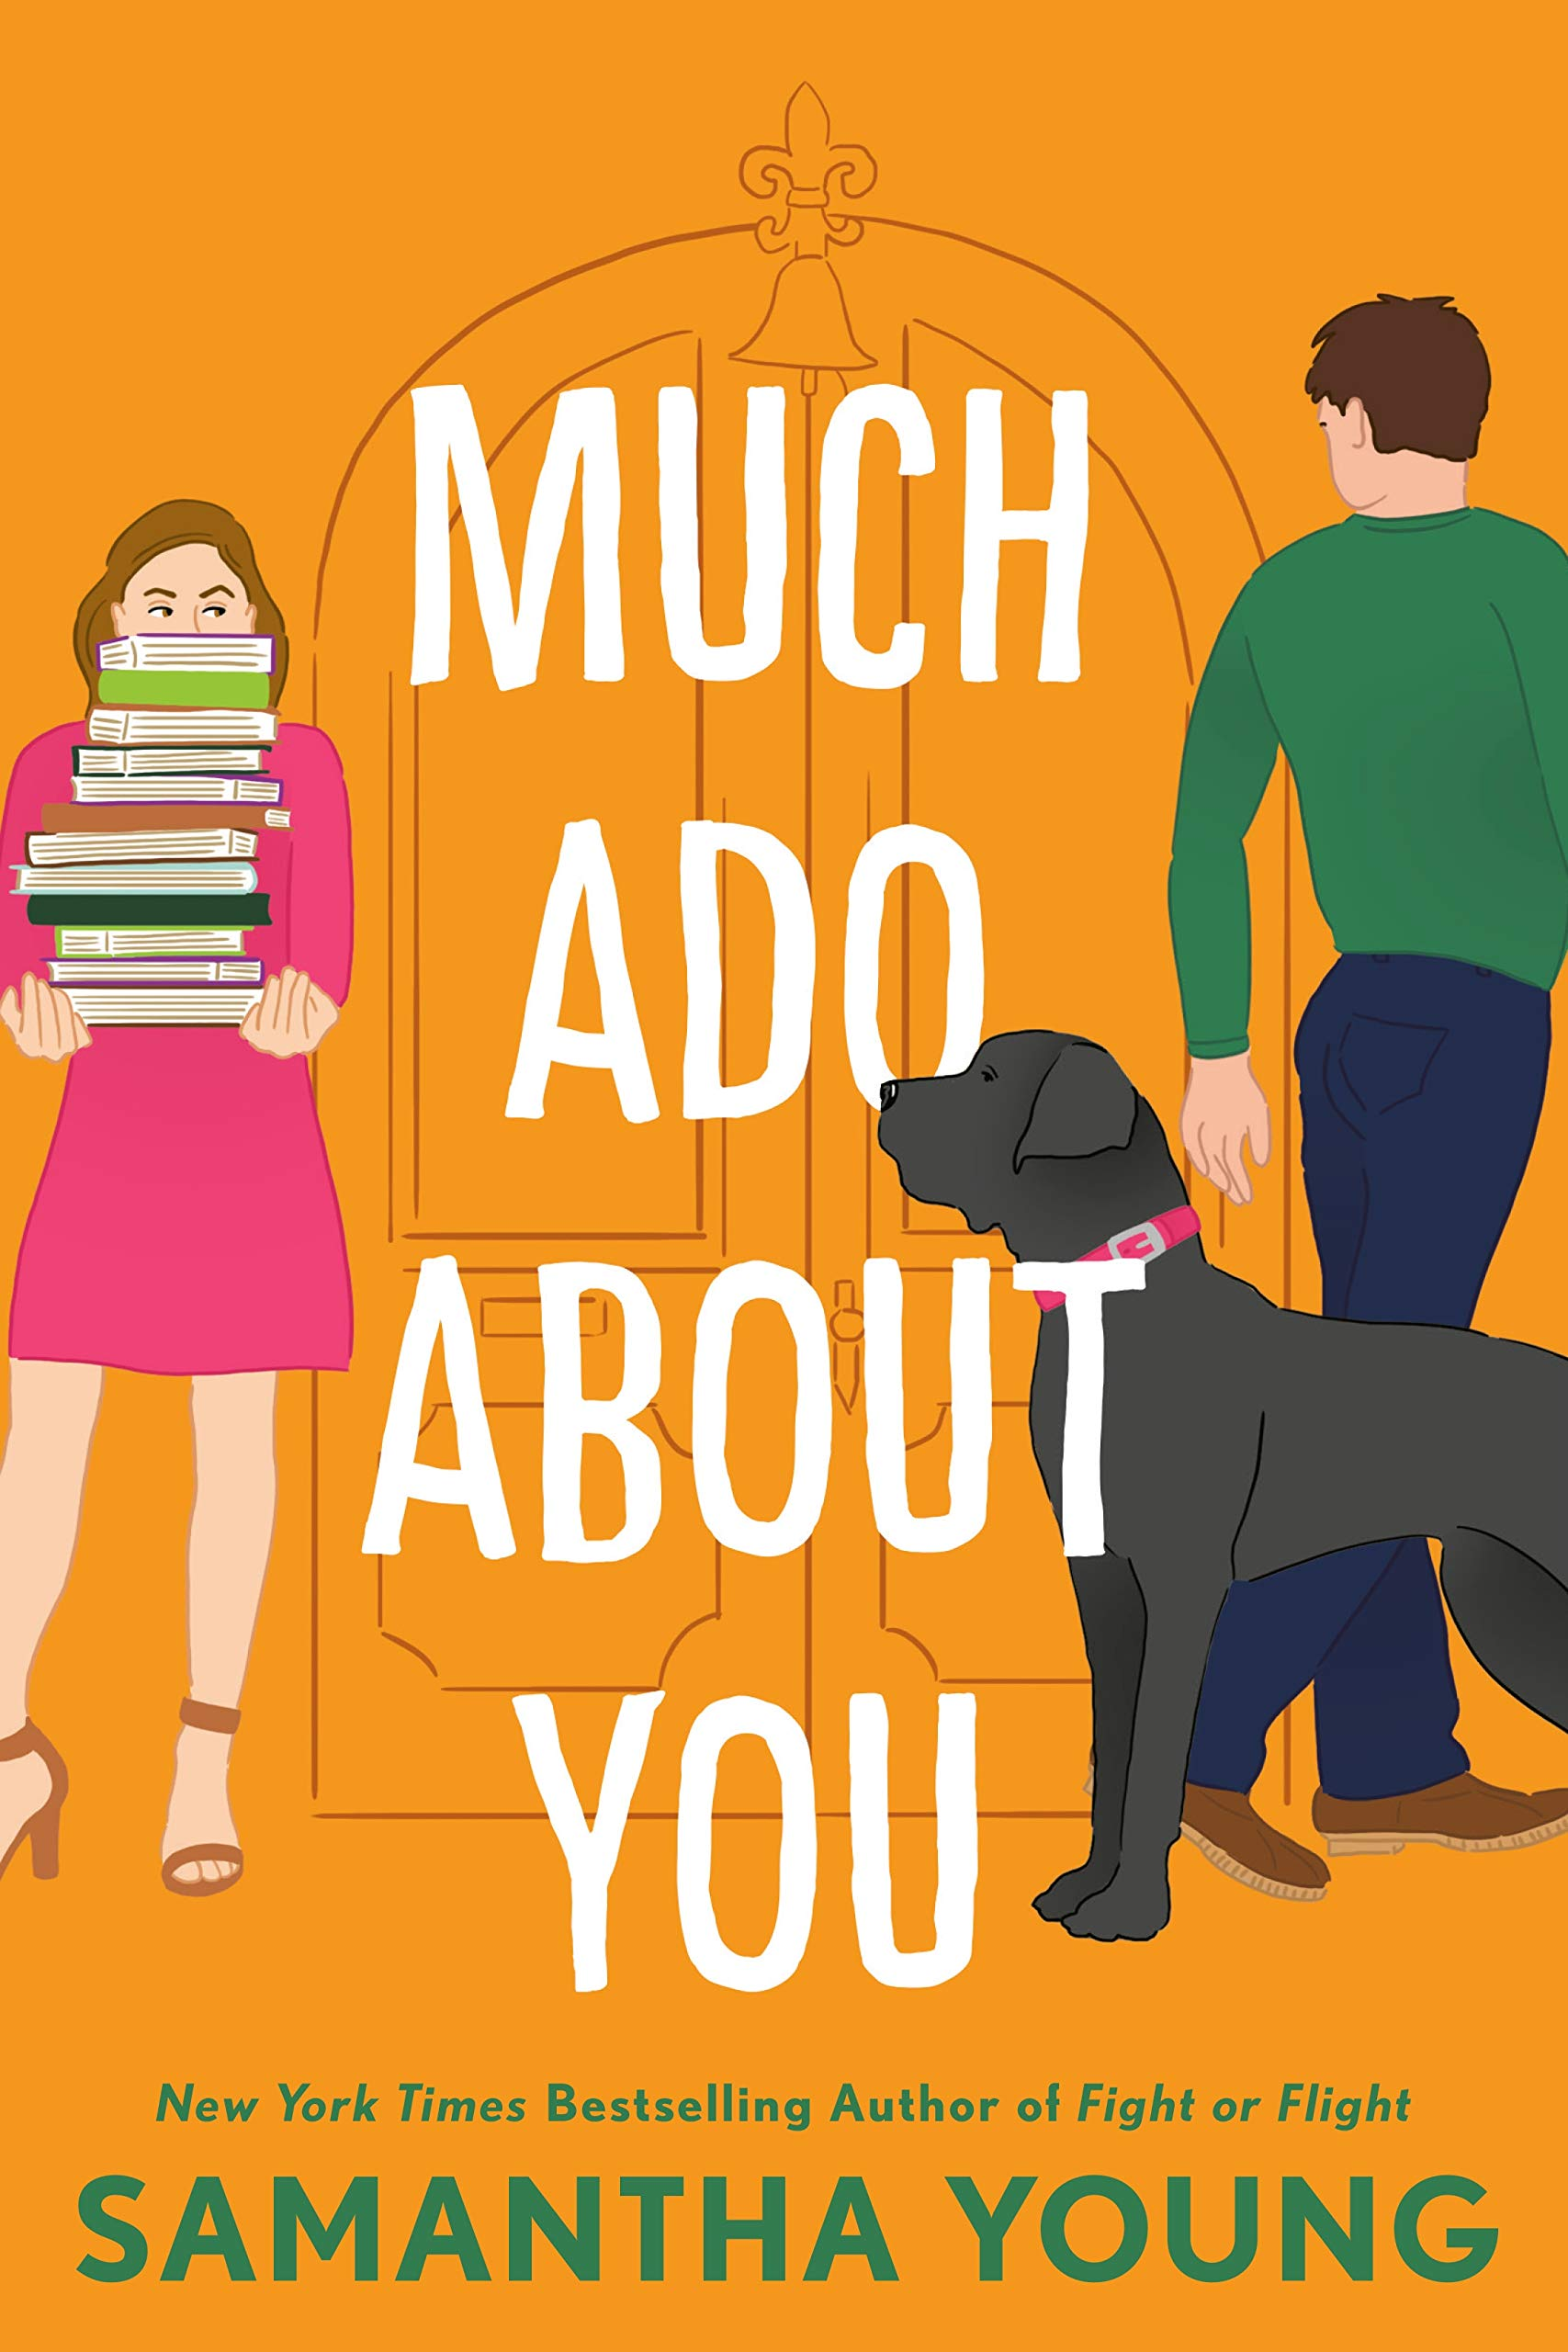 Much Ado About You: Amazon.fr: Young, Samantha: Livres anglais et étrangers